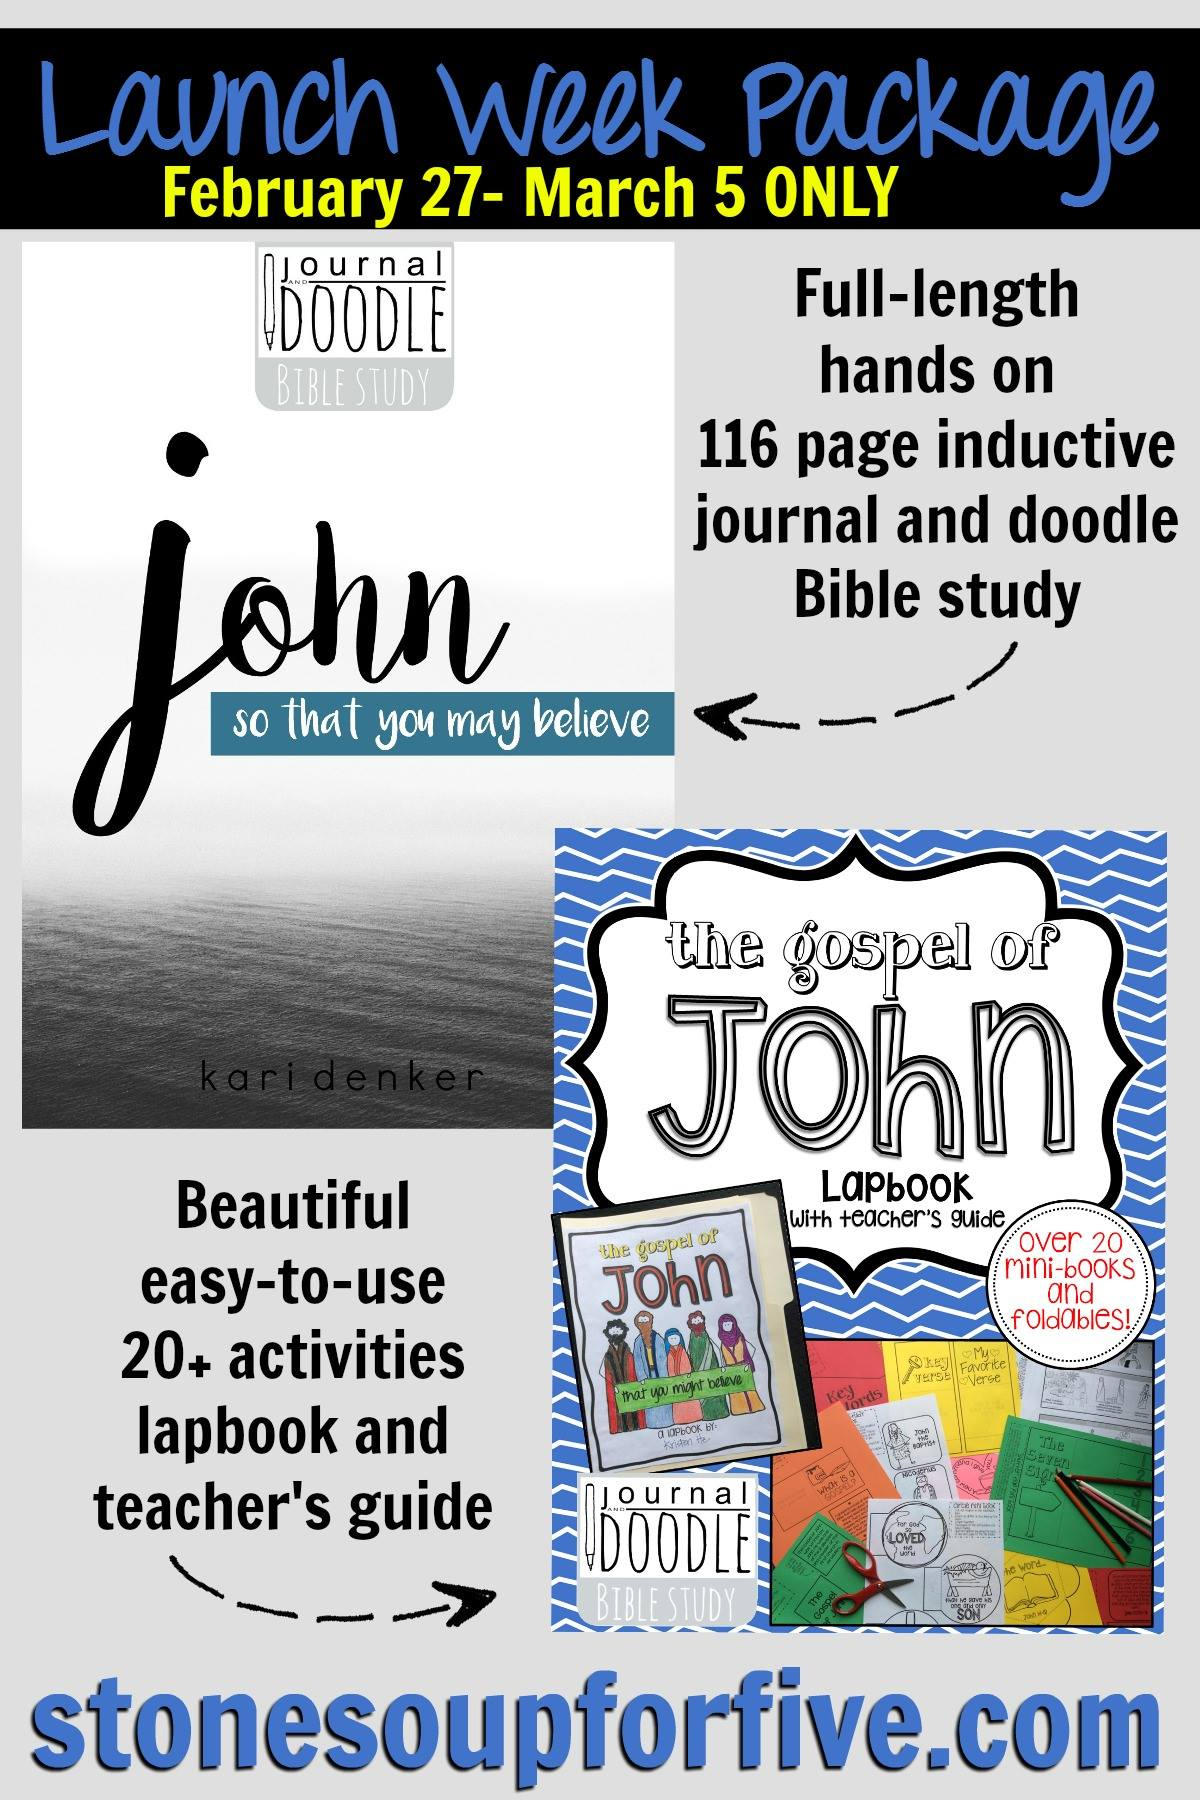 Launch Week Journal and Doodle John